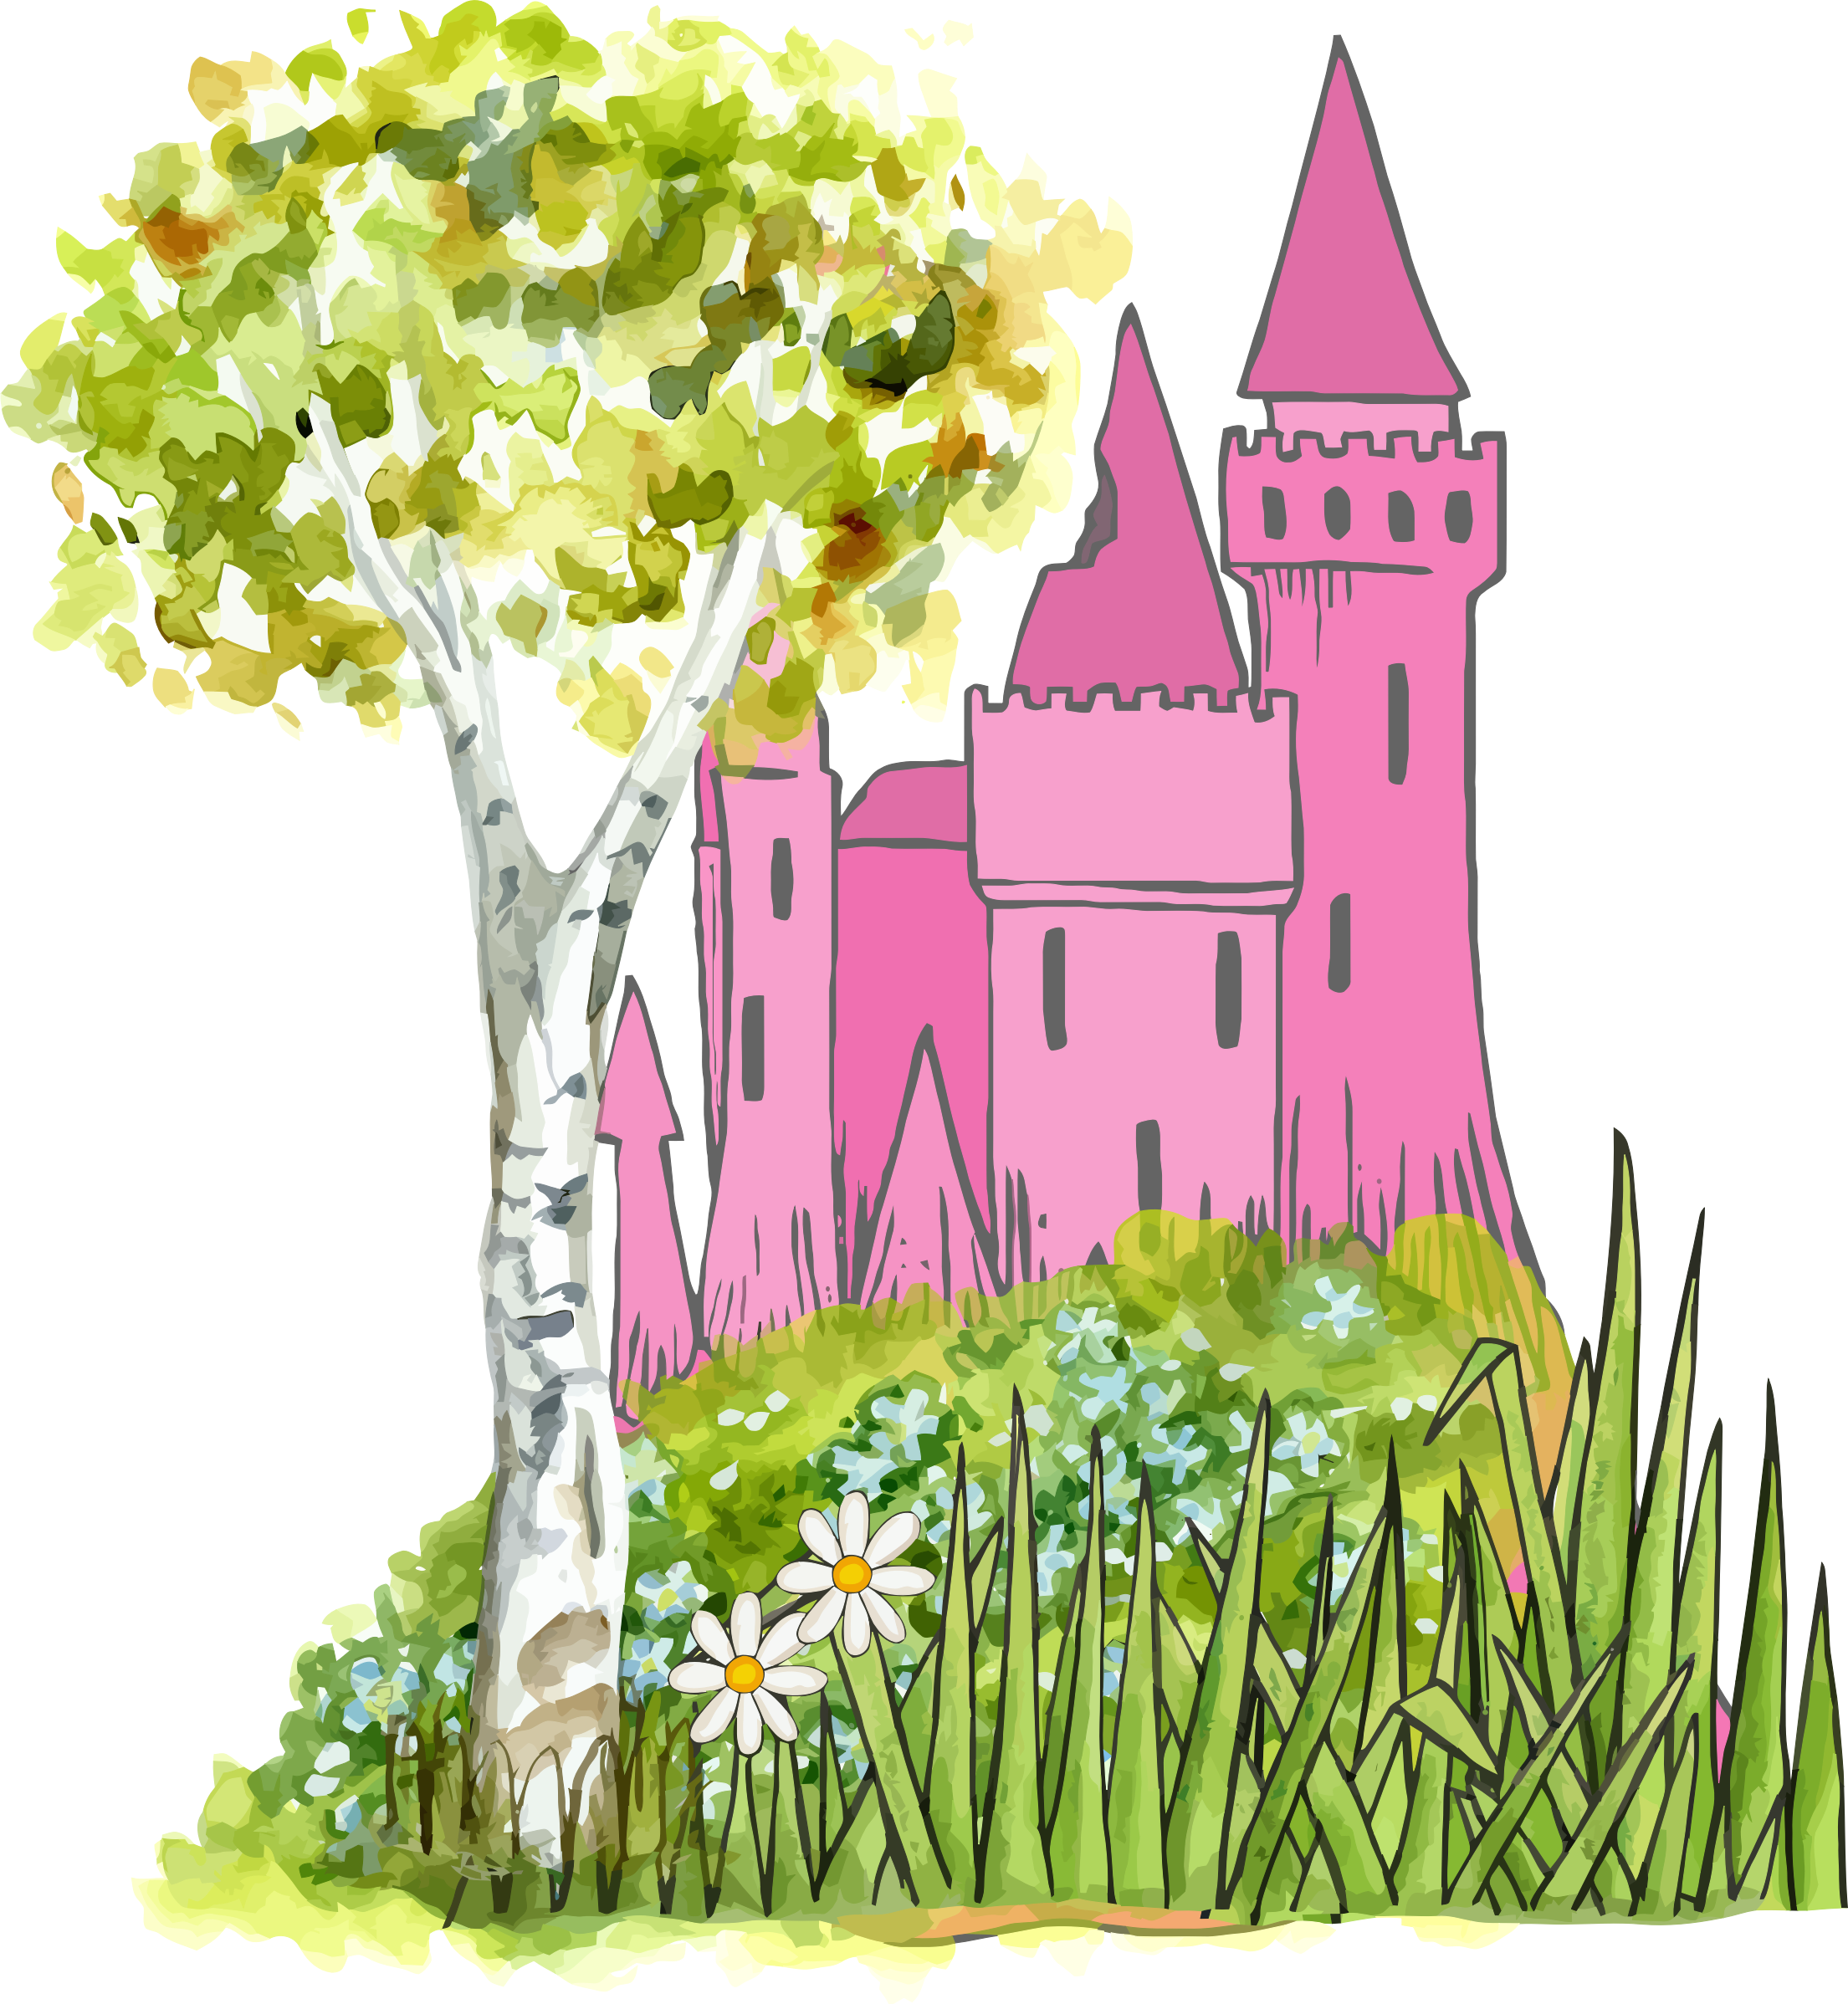 Fairytale book clipart vector royalty free download 28+ Collection of Fairy Tale Castle Clipart | High quality, free ... vector royalty free download